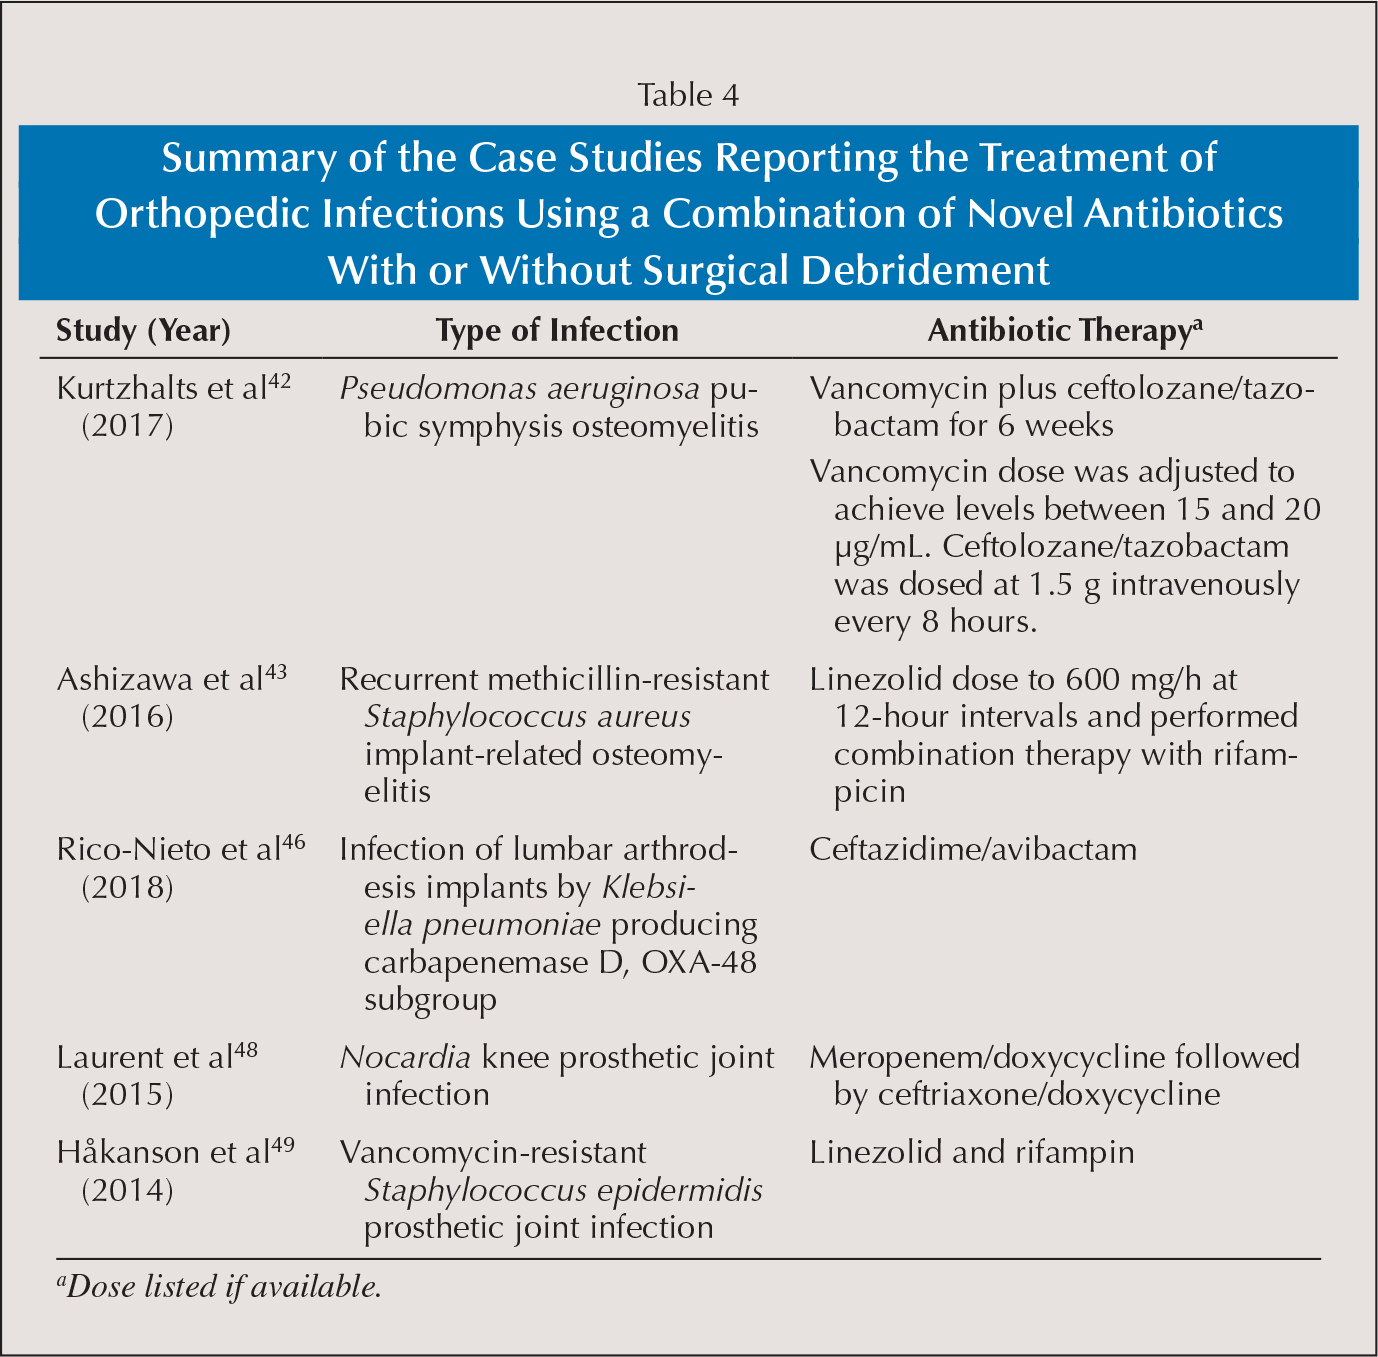 Summary of the Case Studies Reporting the Treatment of Orthopedic Infections Using a Combination of Novel Antibiotics With or Without Surgical Debridement